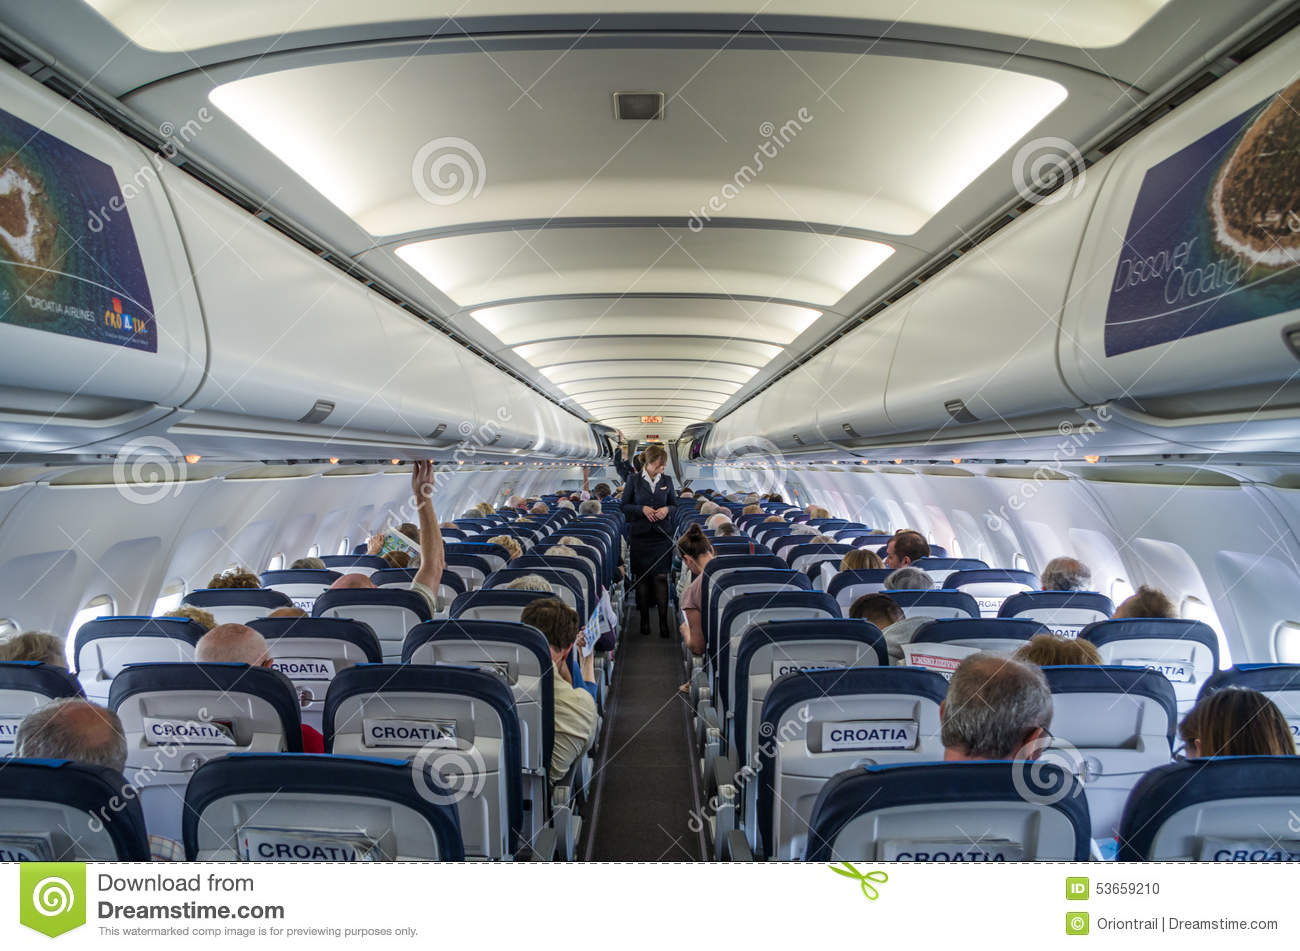 Fente croatie 6 mars 2015 passagers l 39 int rieur d for Interieur d avion